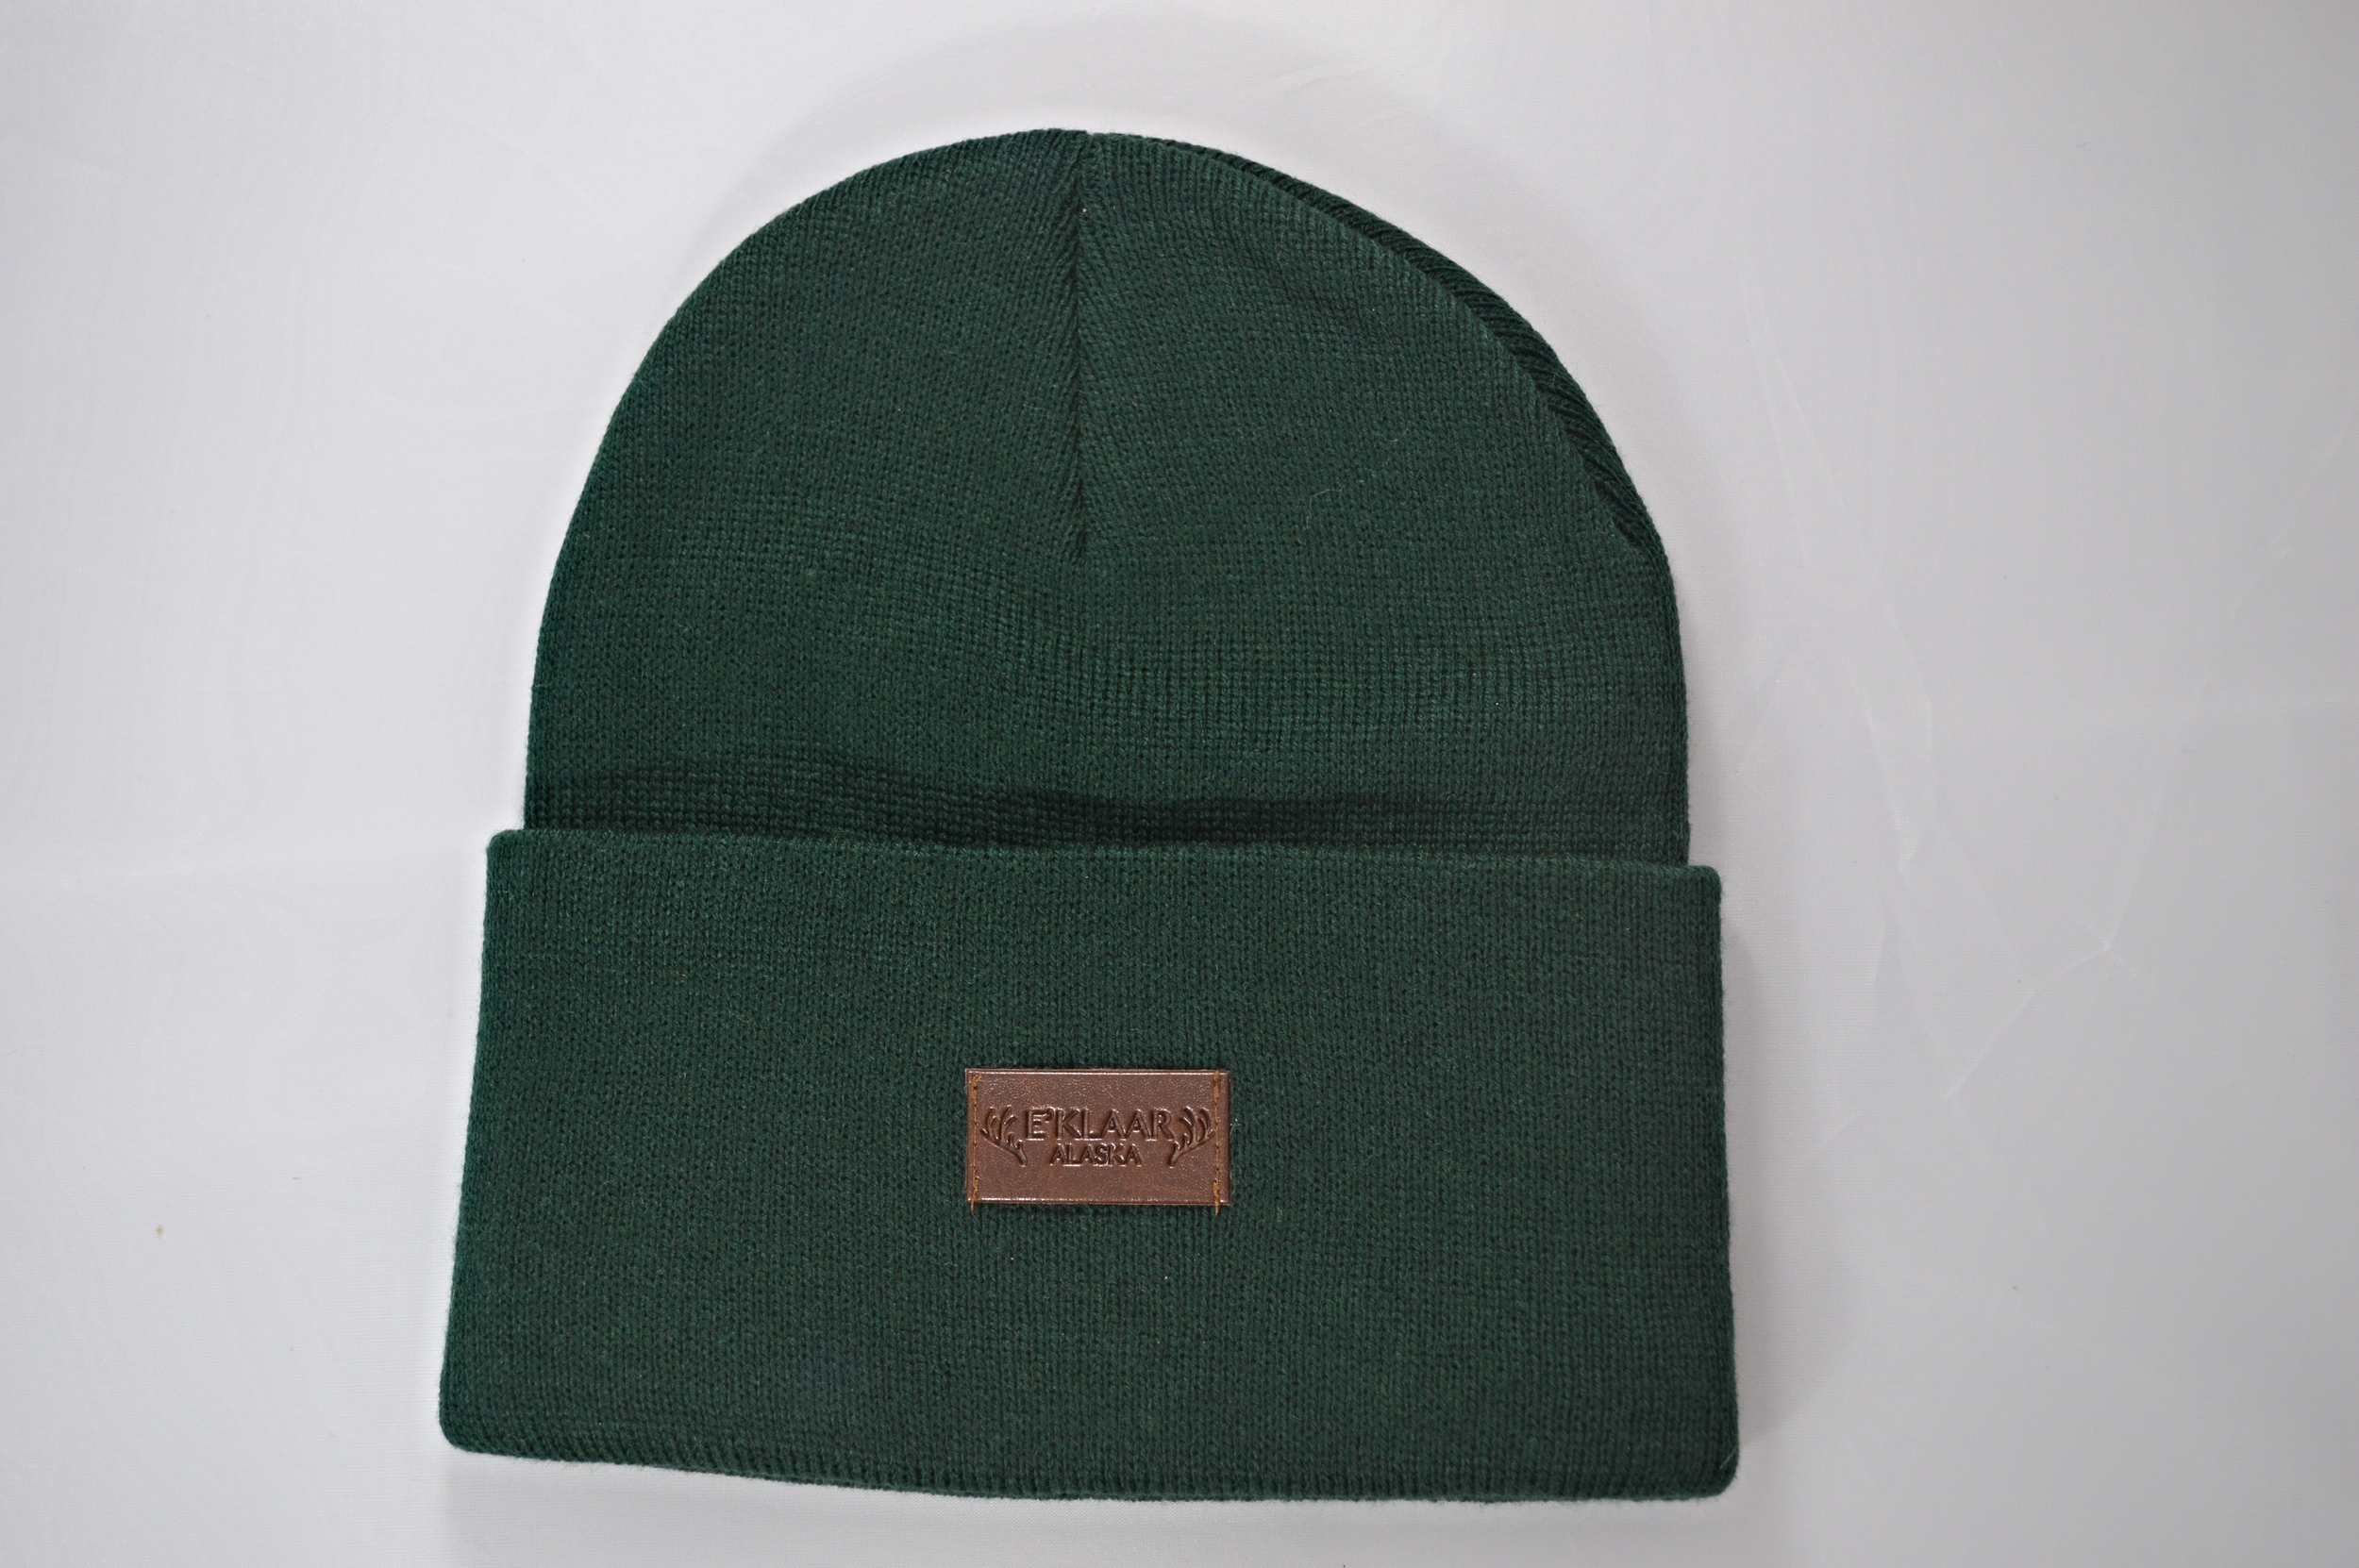 Forest Green Fold Over Beanie With Leather Patch — E KLAAR 34246bea8de